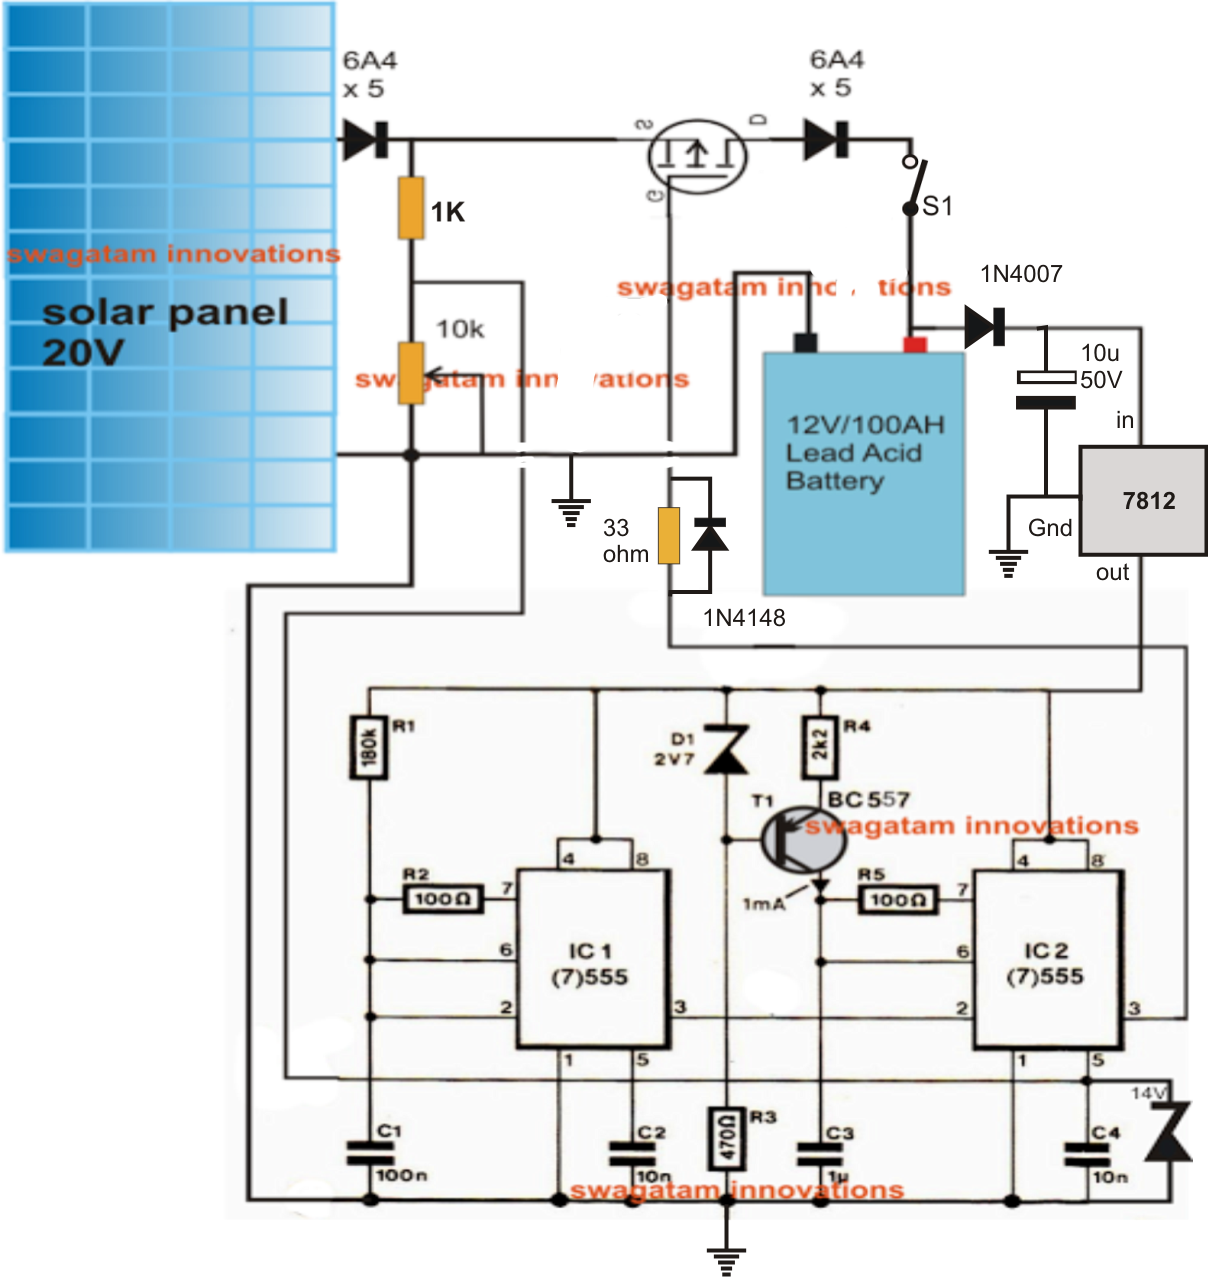 The Circuit Explains A Simple Pwm Based Mppt Battery Charger White Led Driver Diagram Hi Watt Using Ic 555